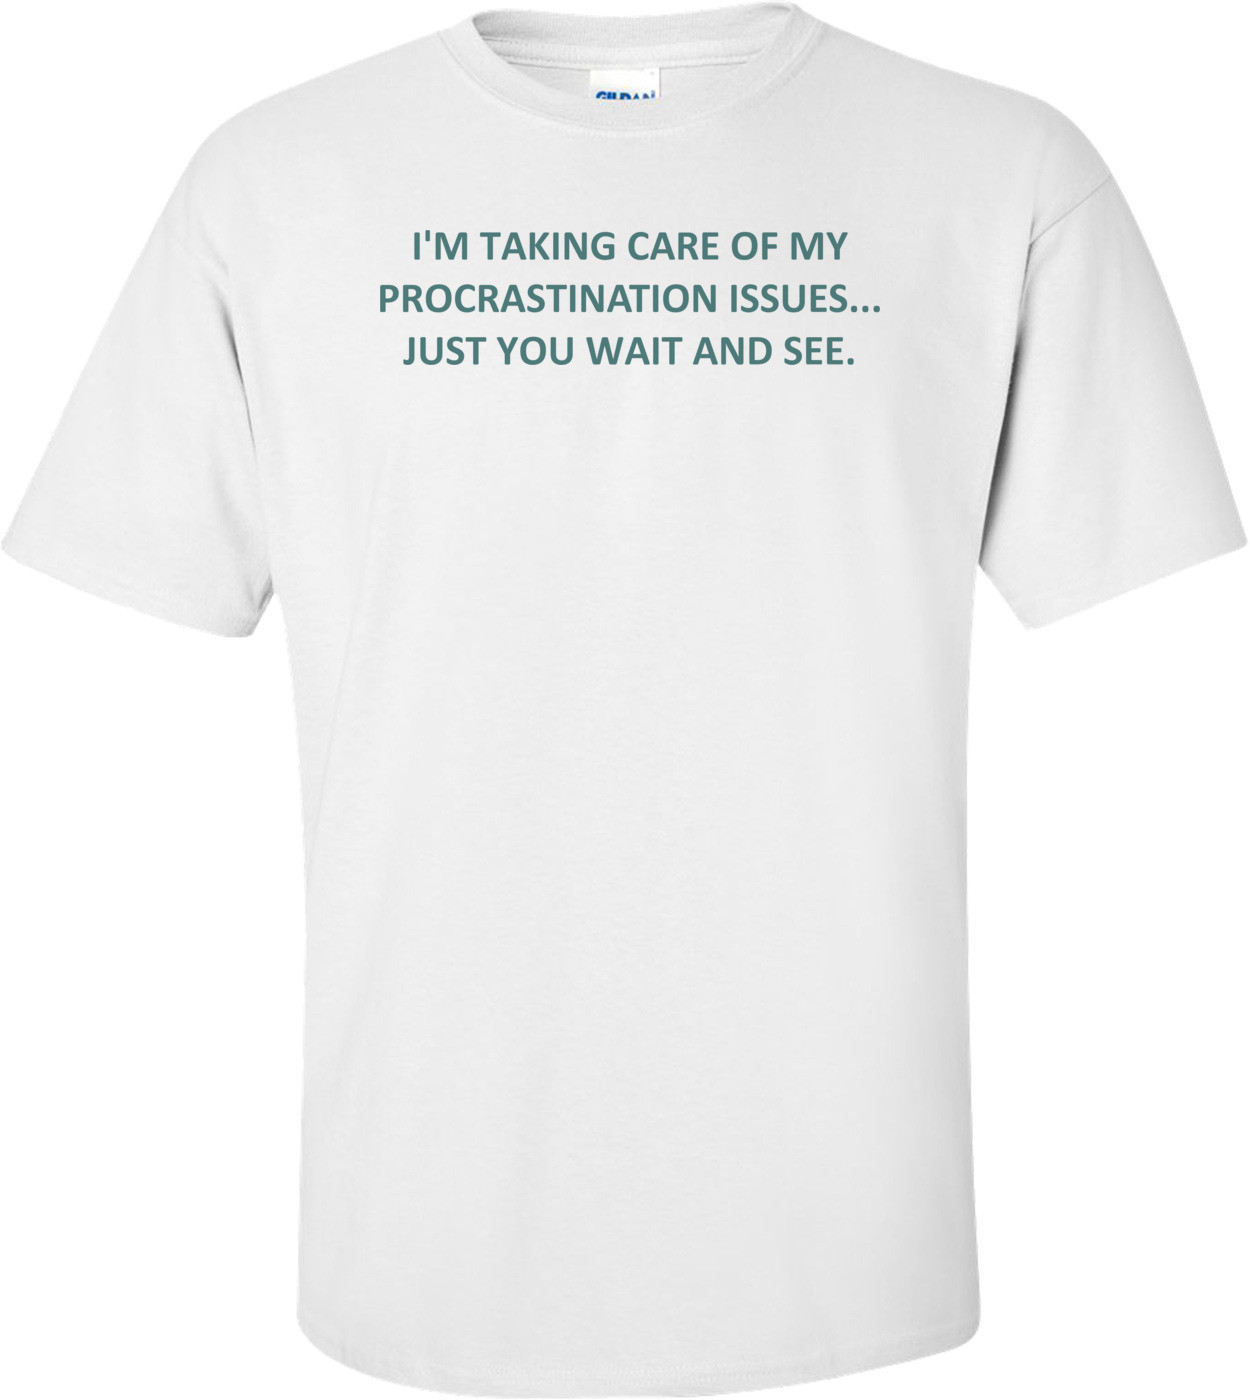 I'M TAKING CARE OF MY PROCRASTINATION ISSUES... JUST YOU WAIT AND SEE. Shirt